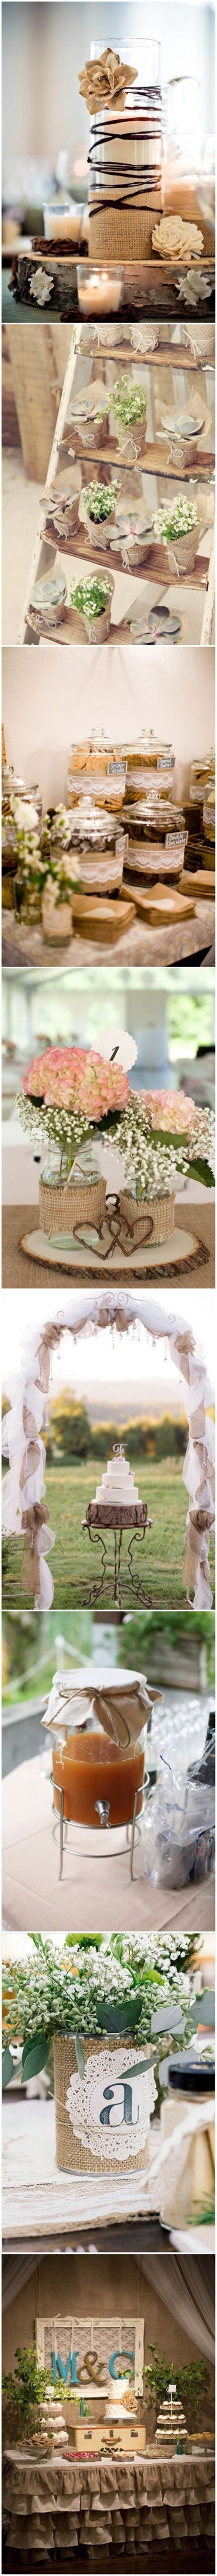 50+ Chic-Rustic Burlap and Lace Wedding Ideas